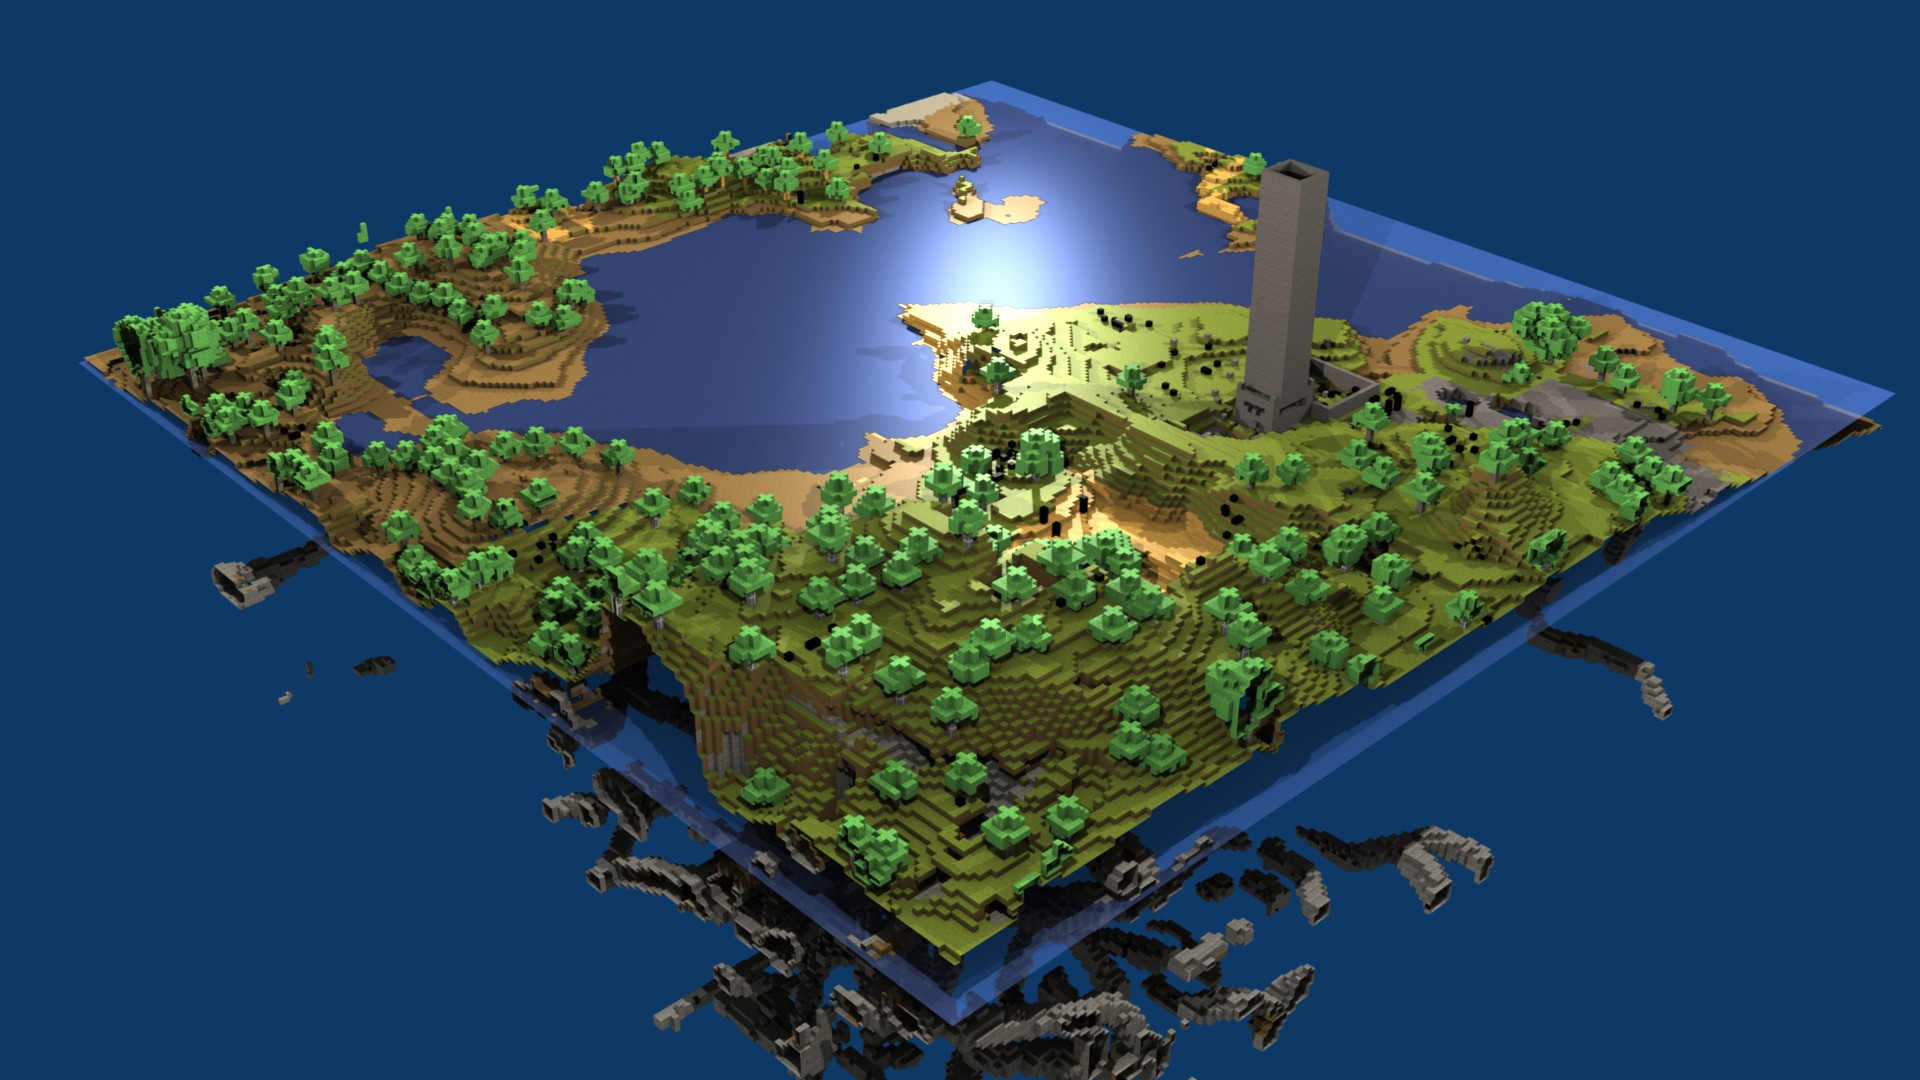 35 Awesome Minecraft wallpapers in HD 1 Design Utopia Trend 1920x1080